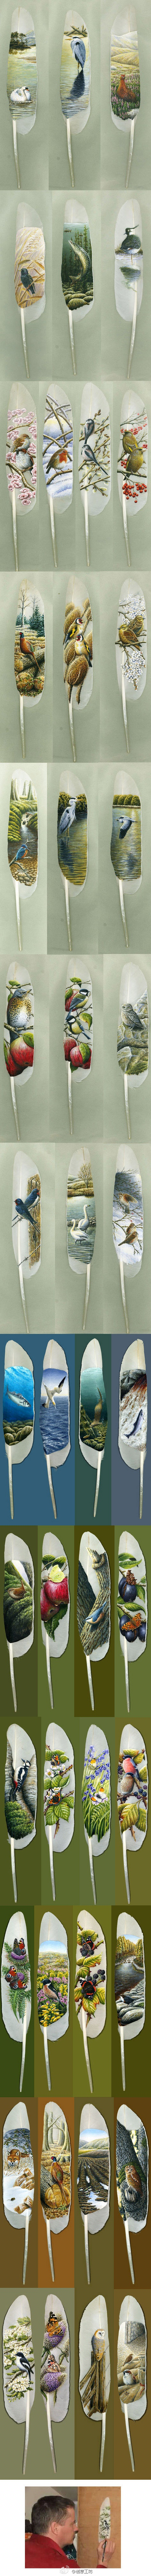 Feather Art by Ian Davie